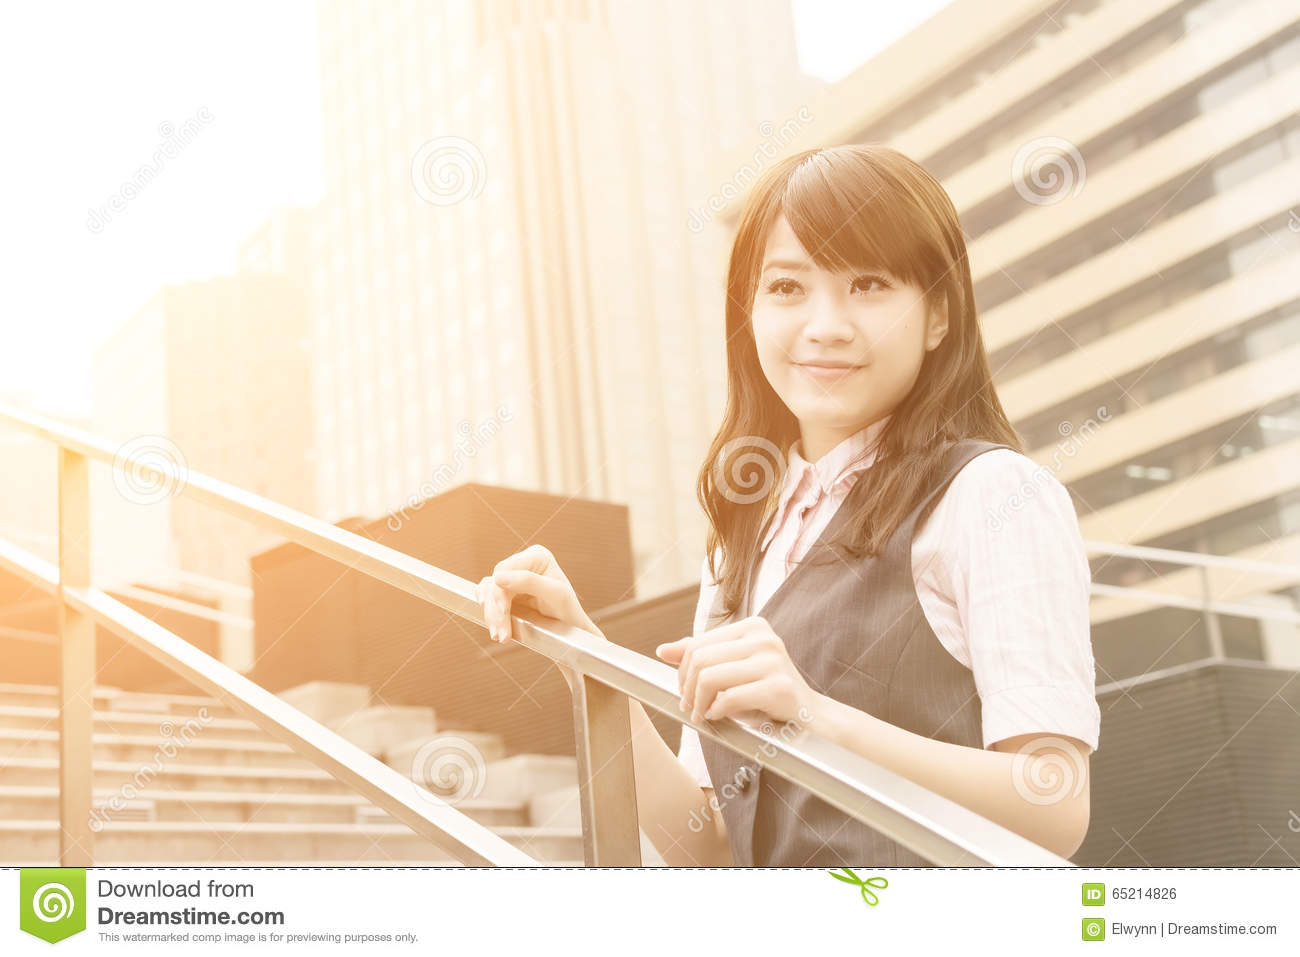 Successful Business Woman Stock Photo - Image: 65214826